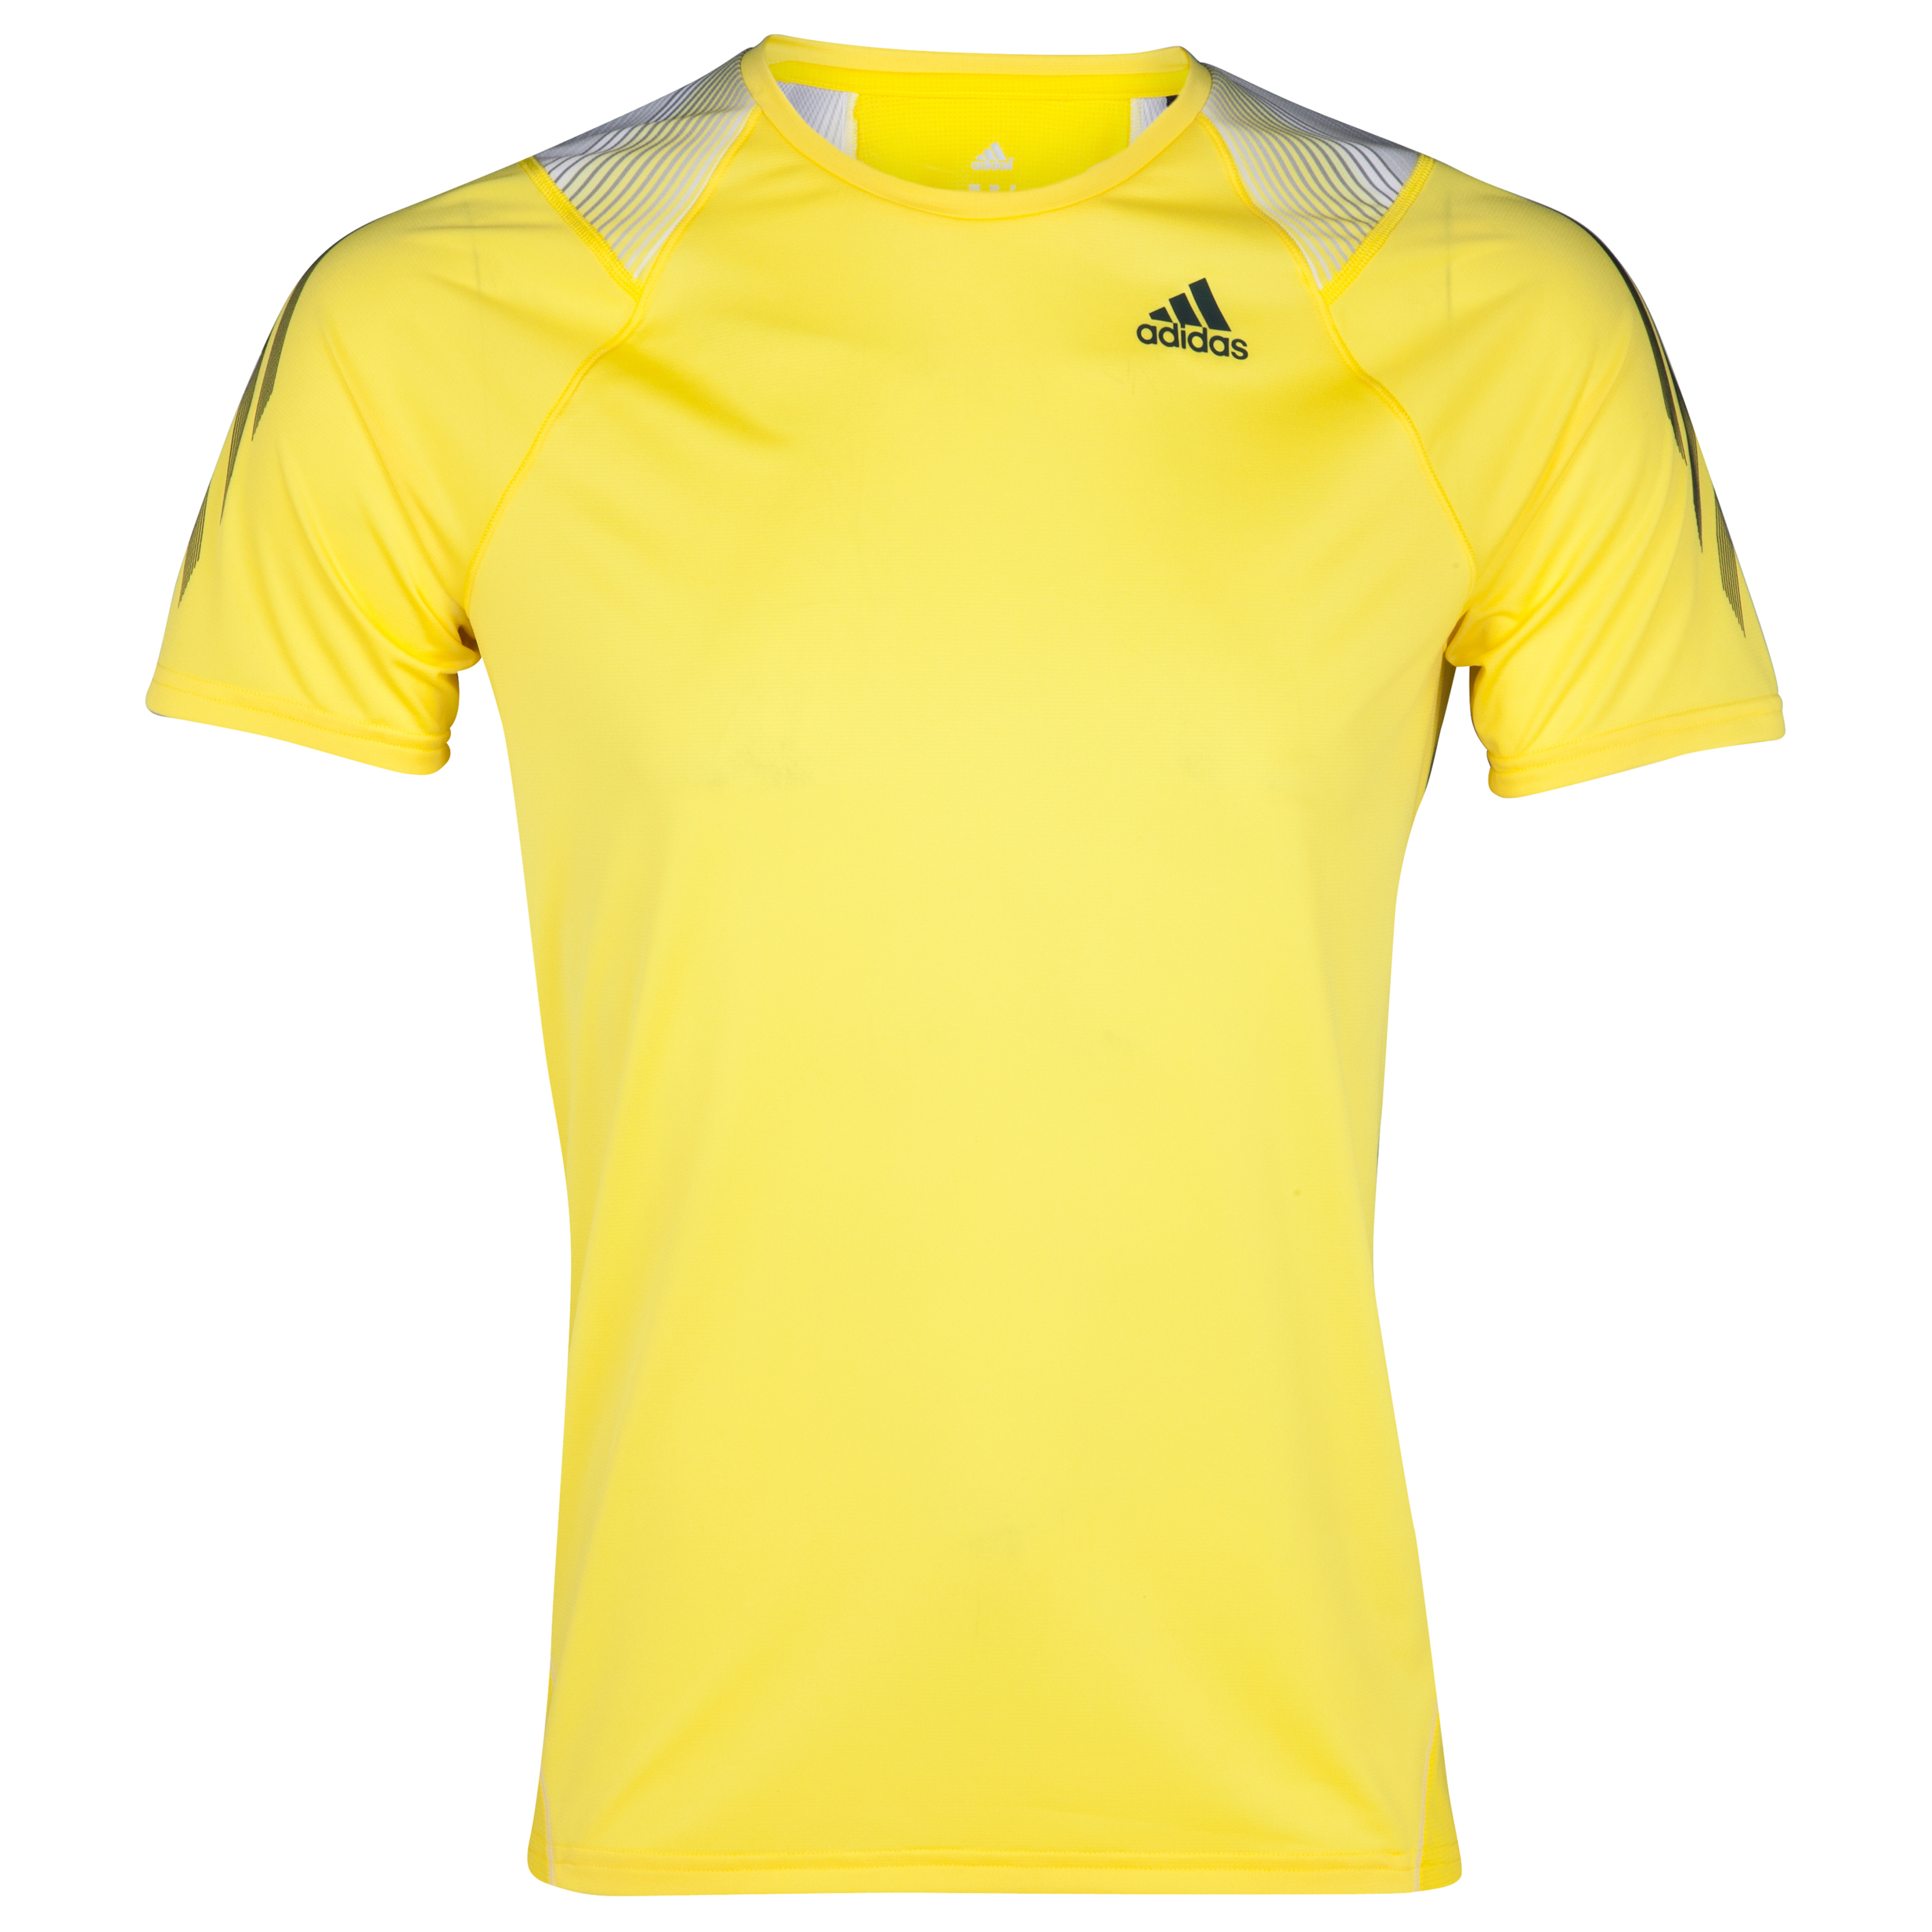 Adidas Adizero T-Shirt - Vivid Yellow/Tech Onix